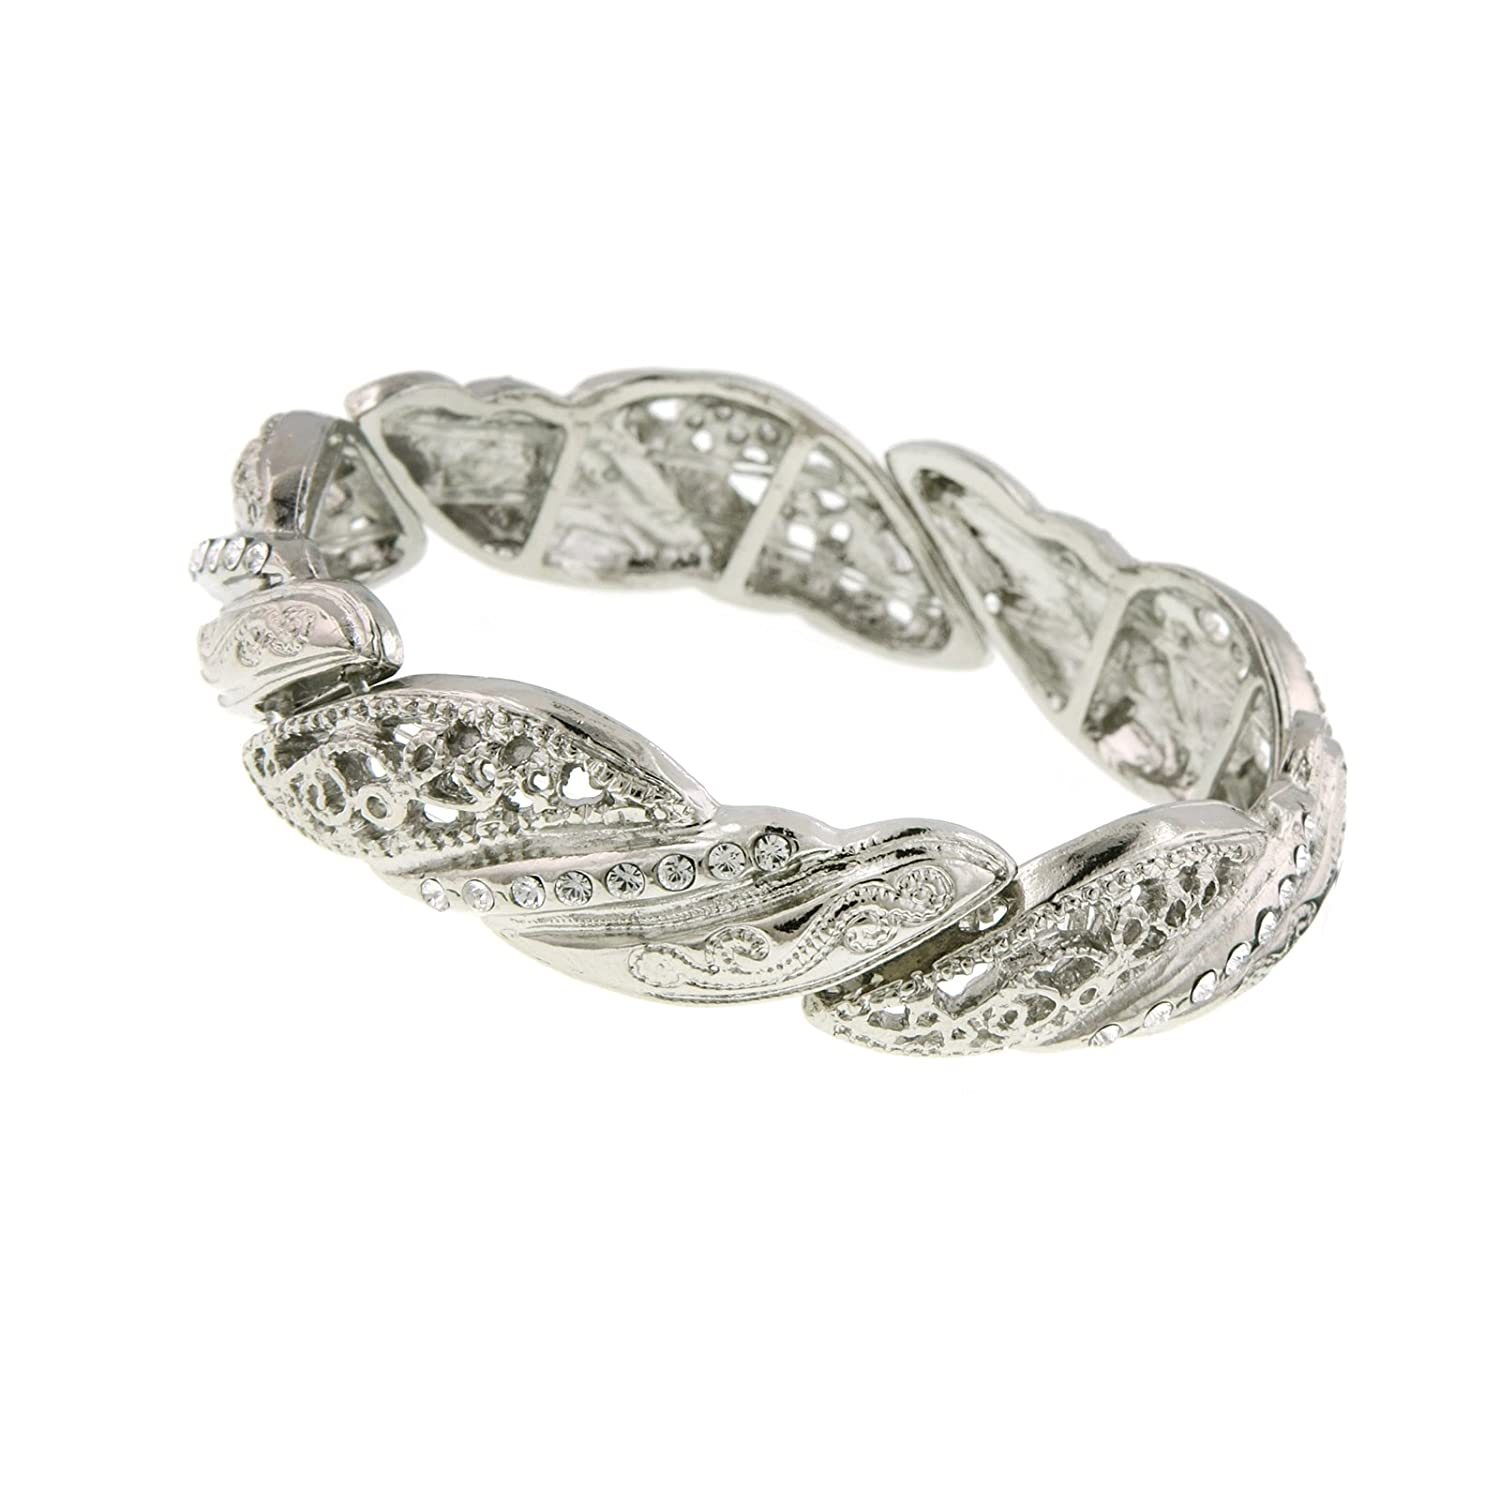 1930s Jewelry | Art Deco Style Jewelry 1928 Jewelry Silver Filigree Twist Crystal Bracelet $28.00 AT vintagedancer.com